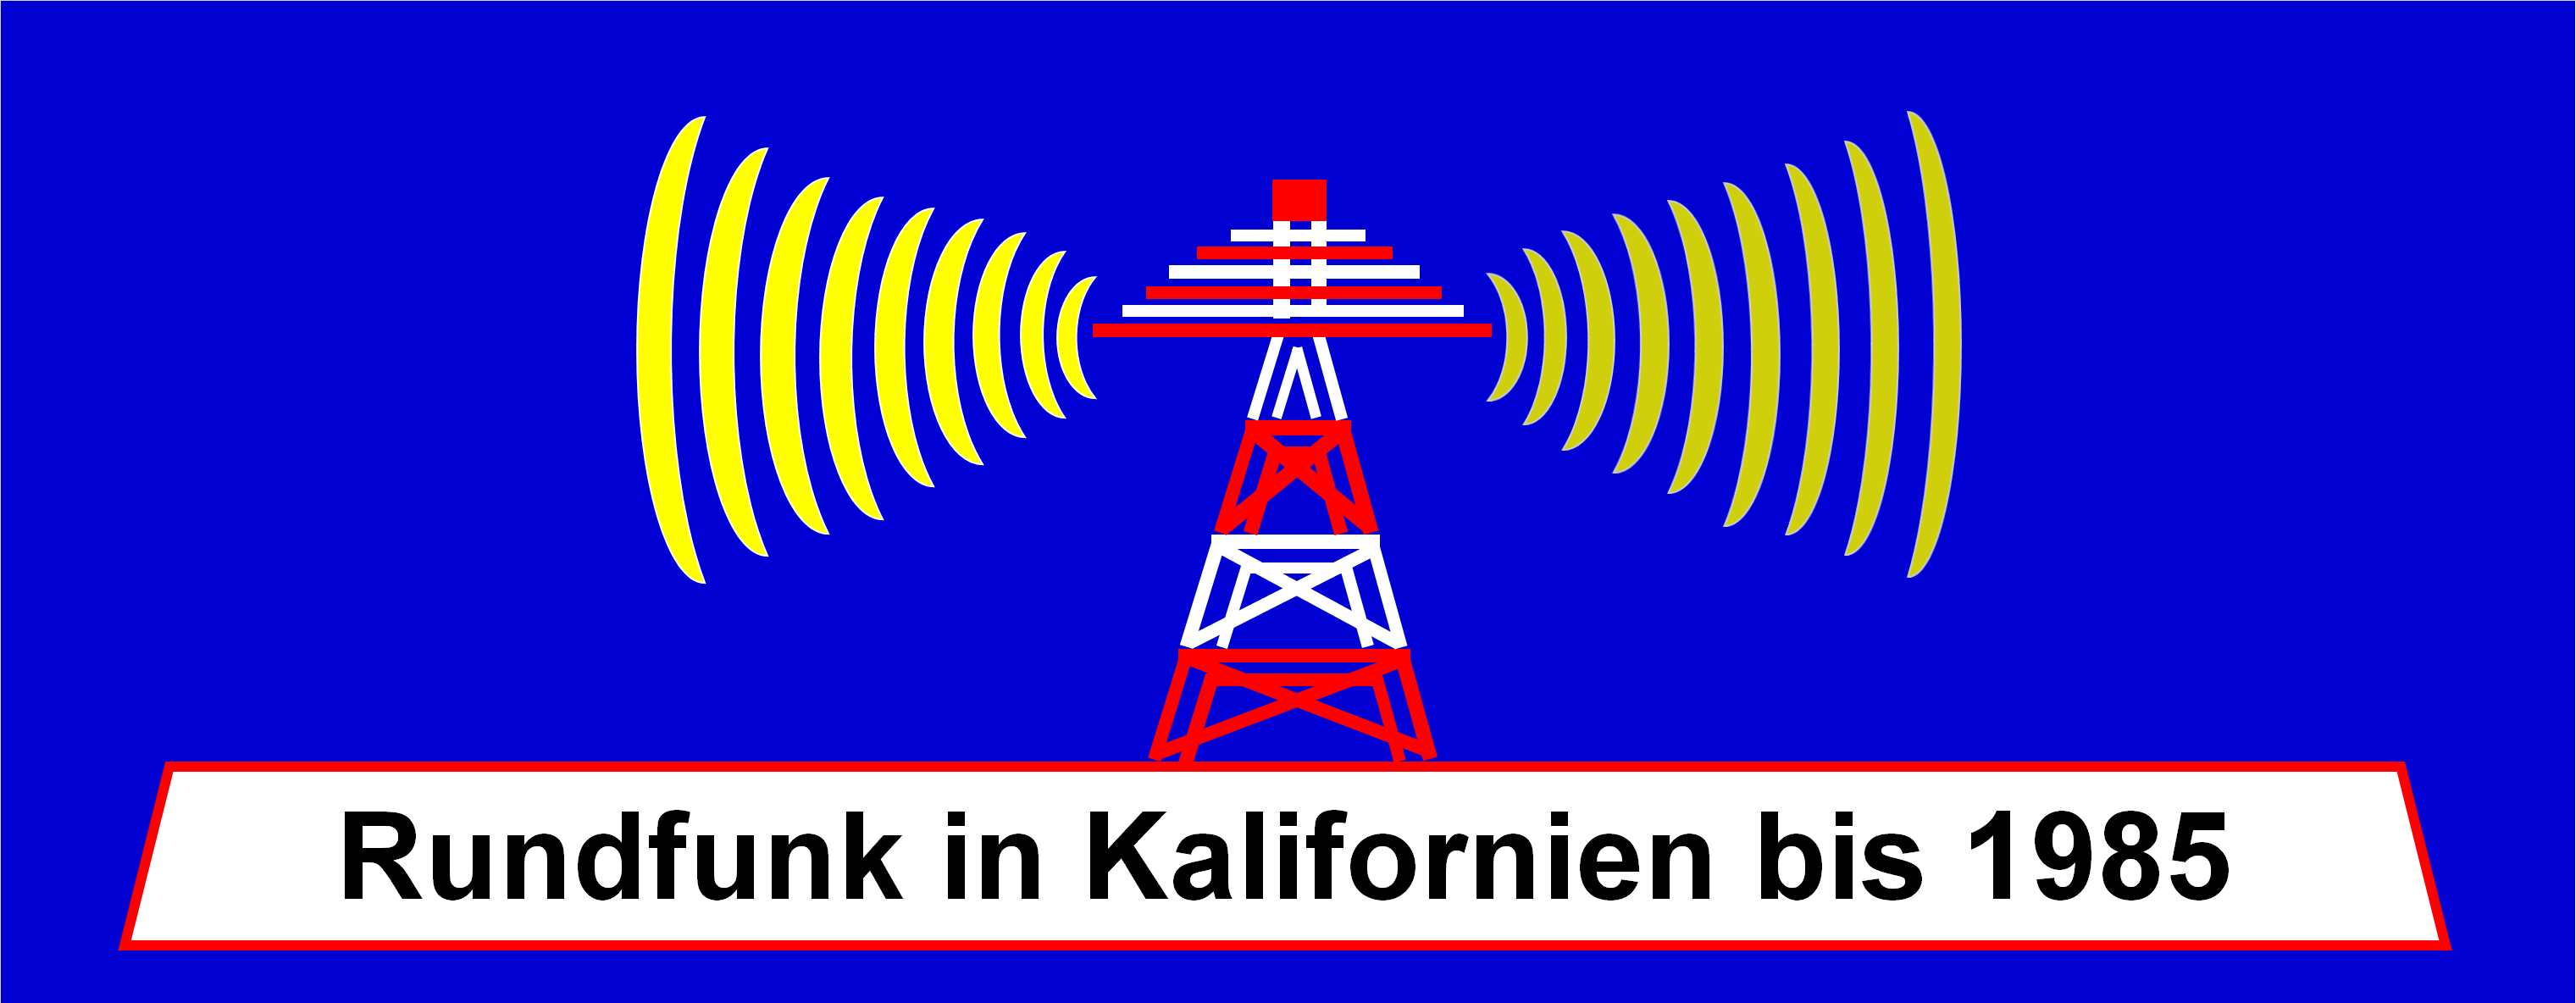 Rundfunk in Kalifornien bis 1985